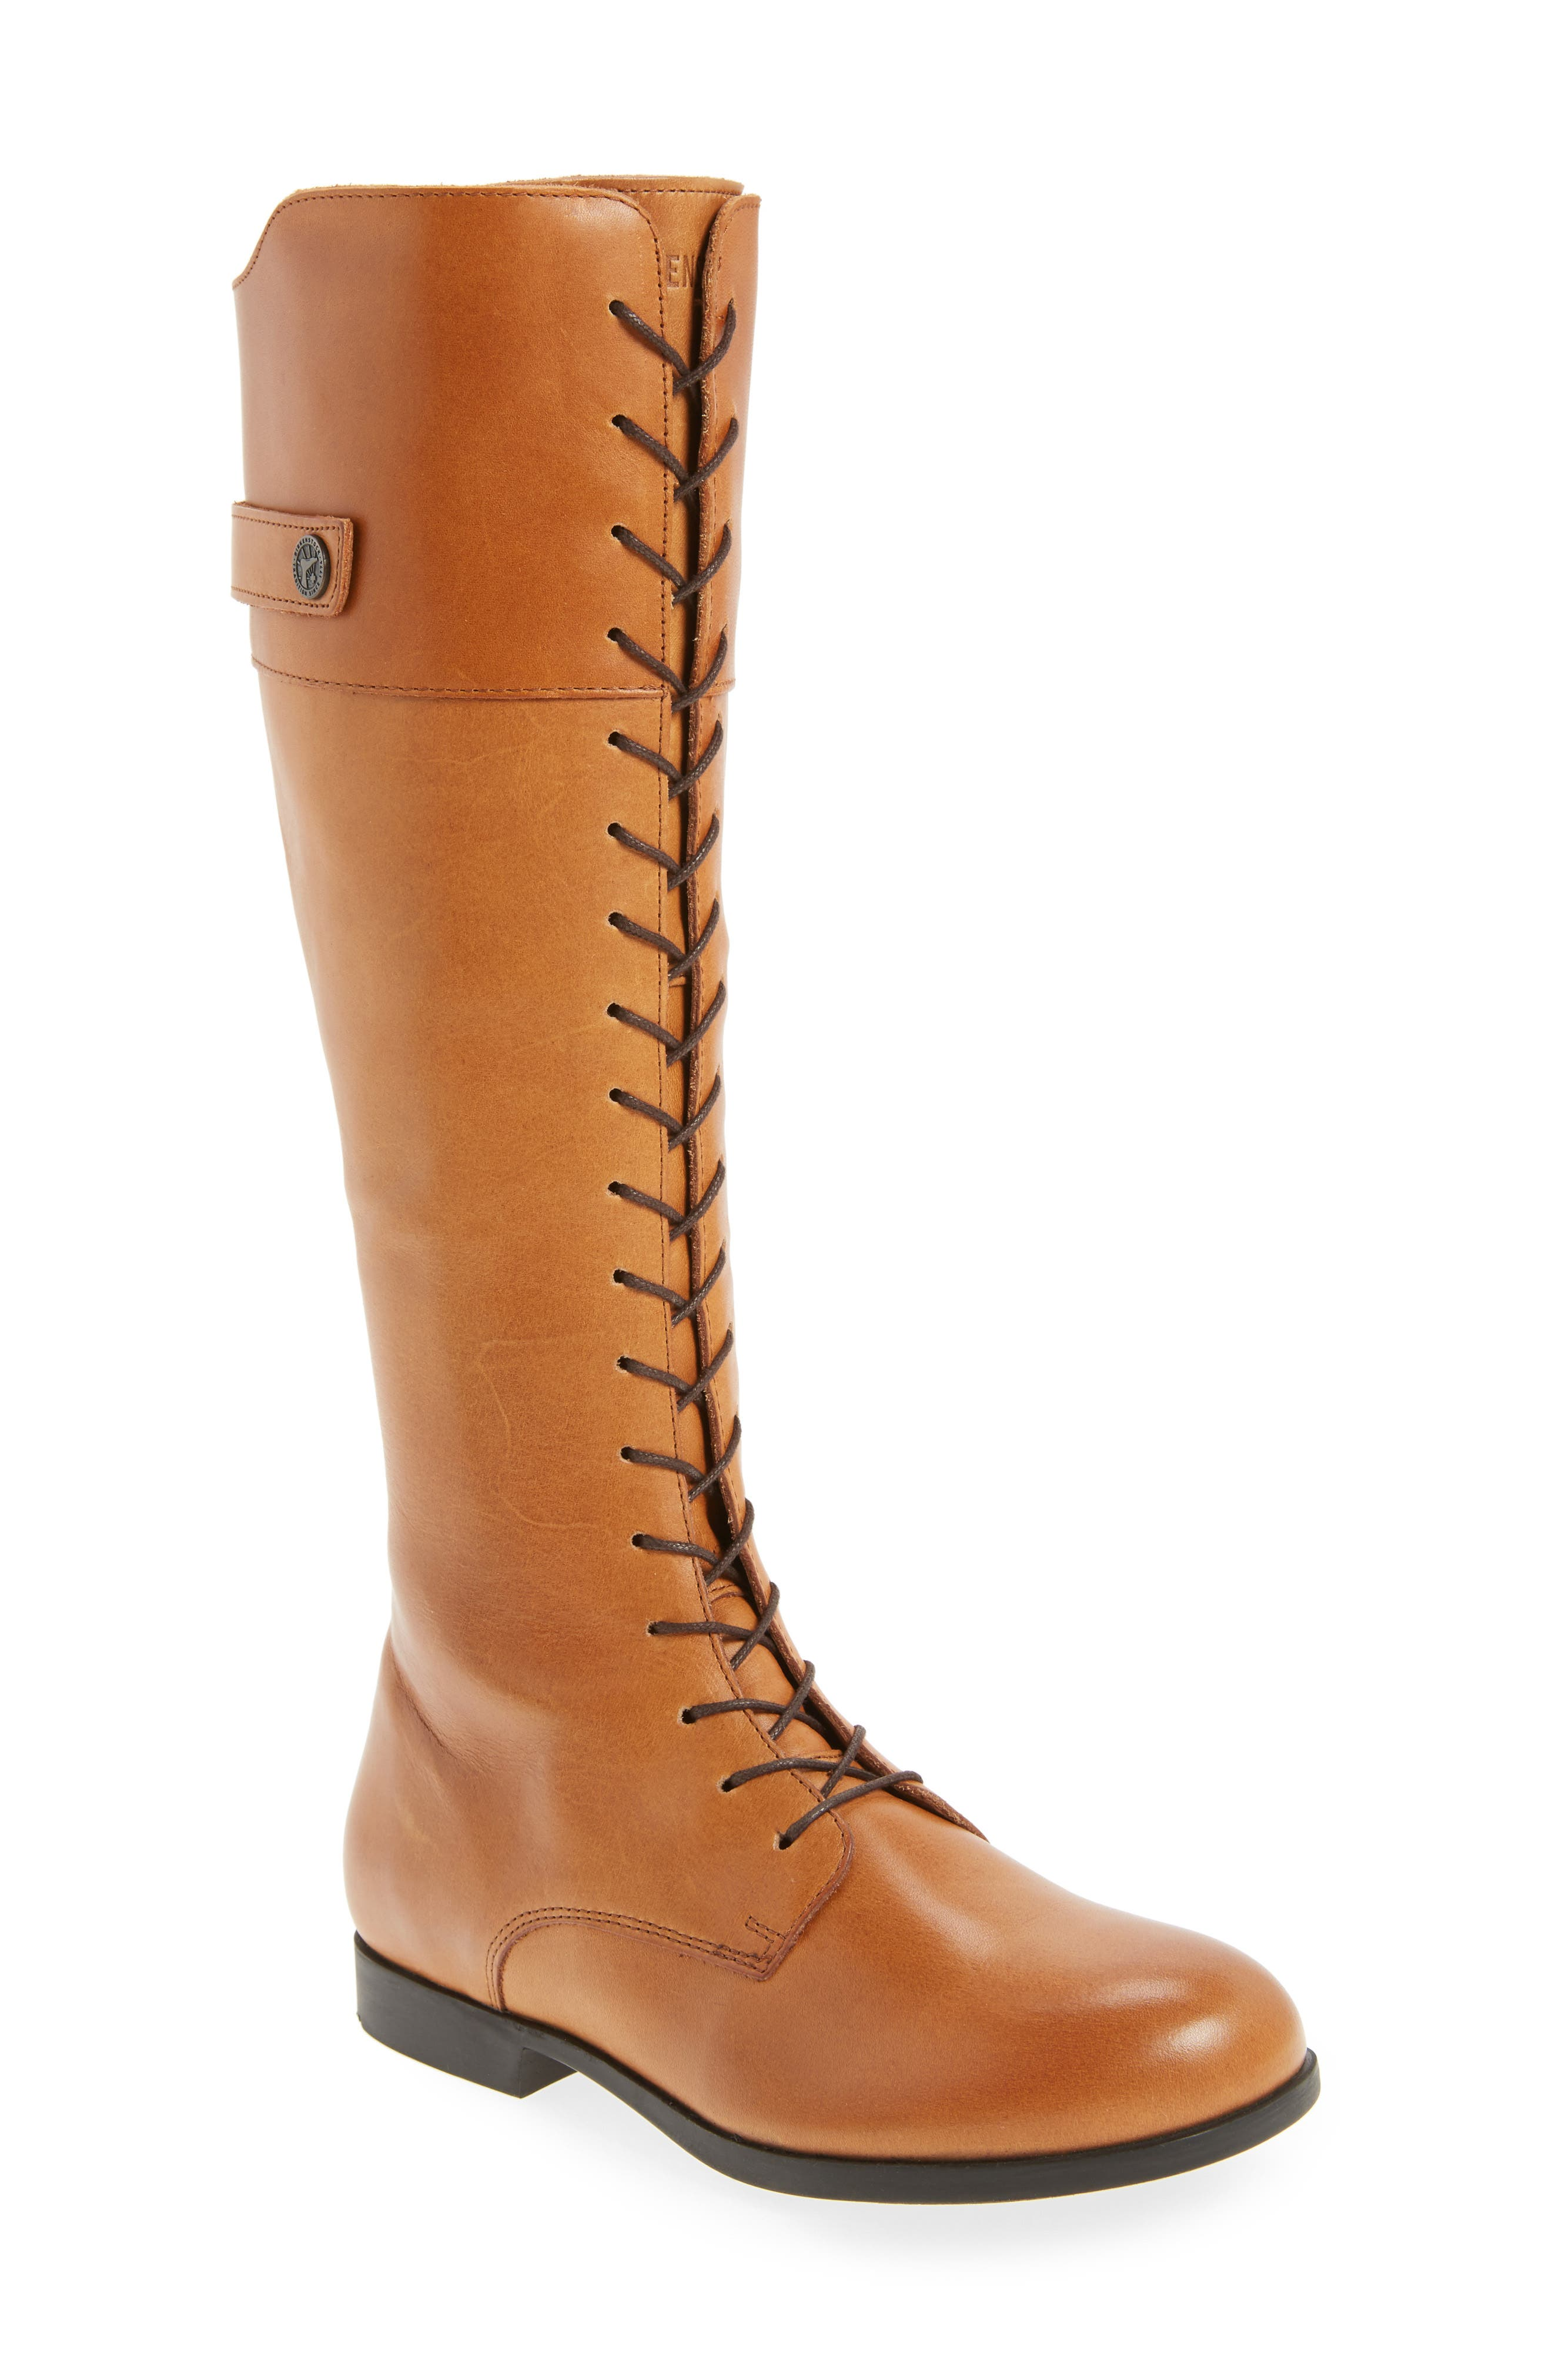 Longford Knee-High Lace-Up Boot, Main, color, 200